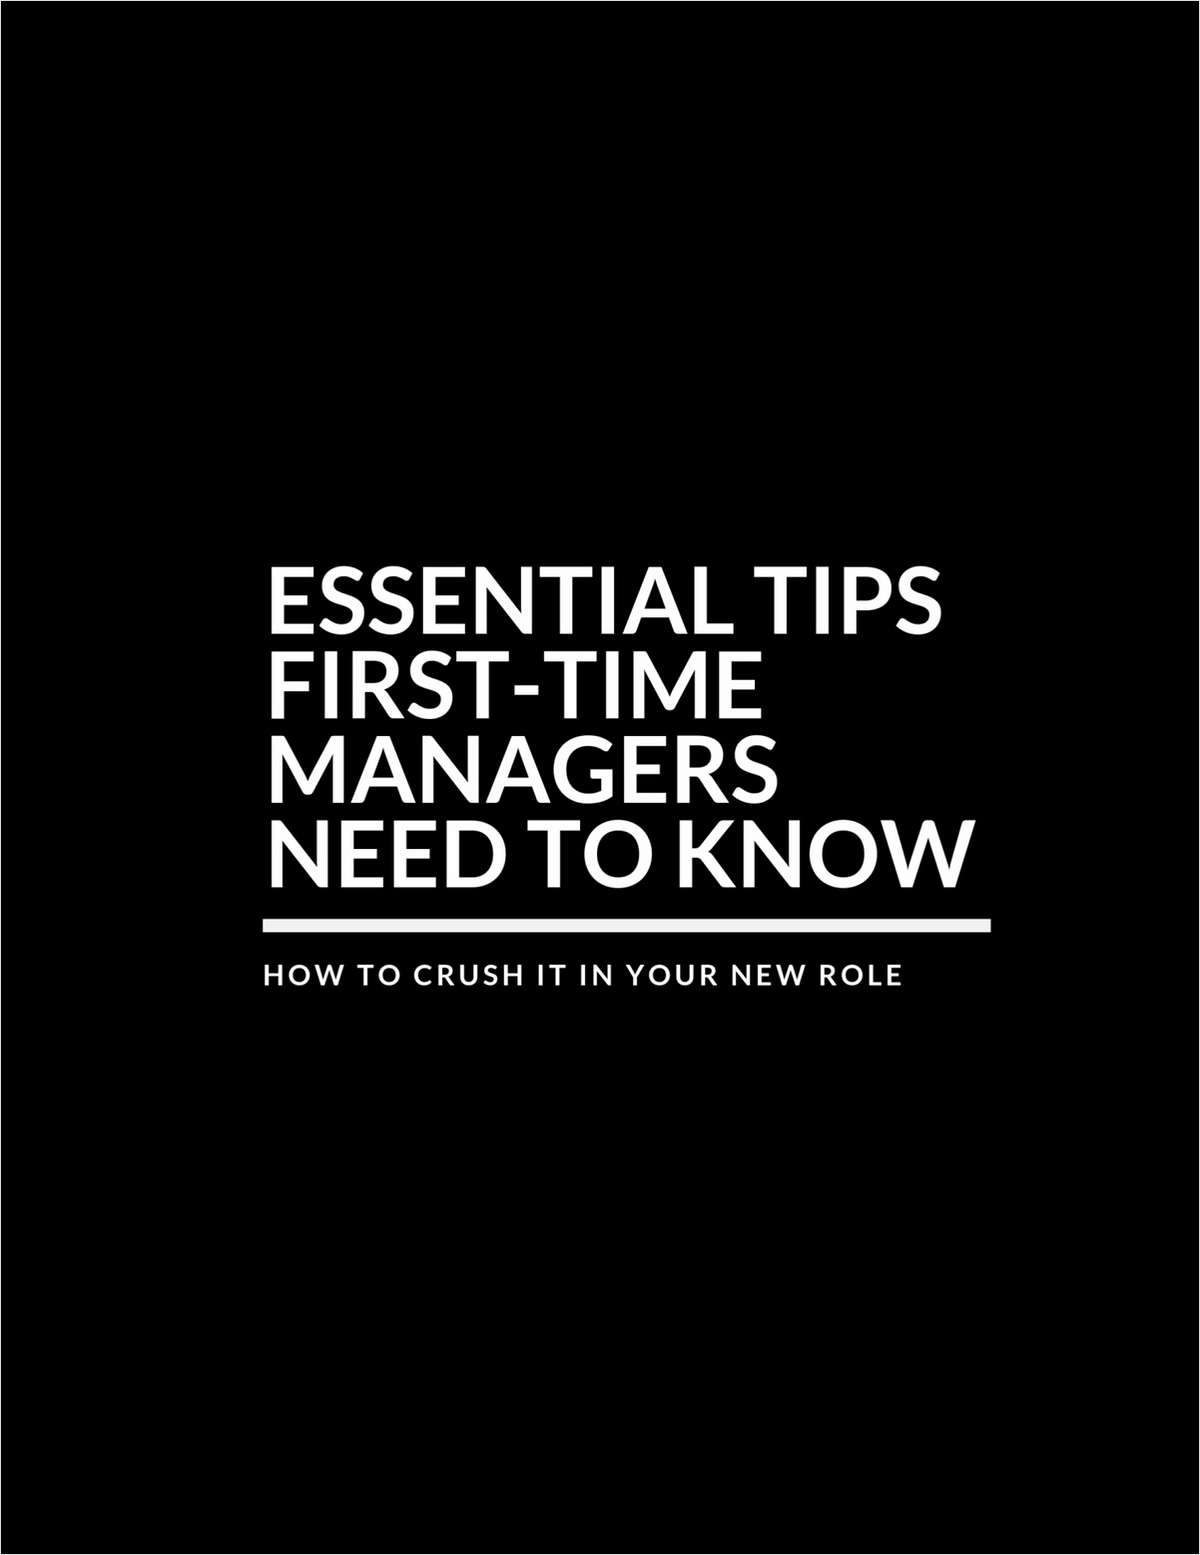 Essential Tips First-Time Managers Need to Know